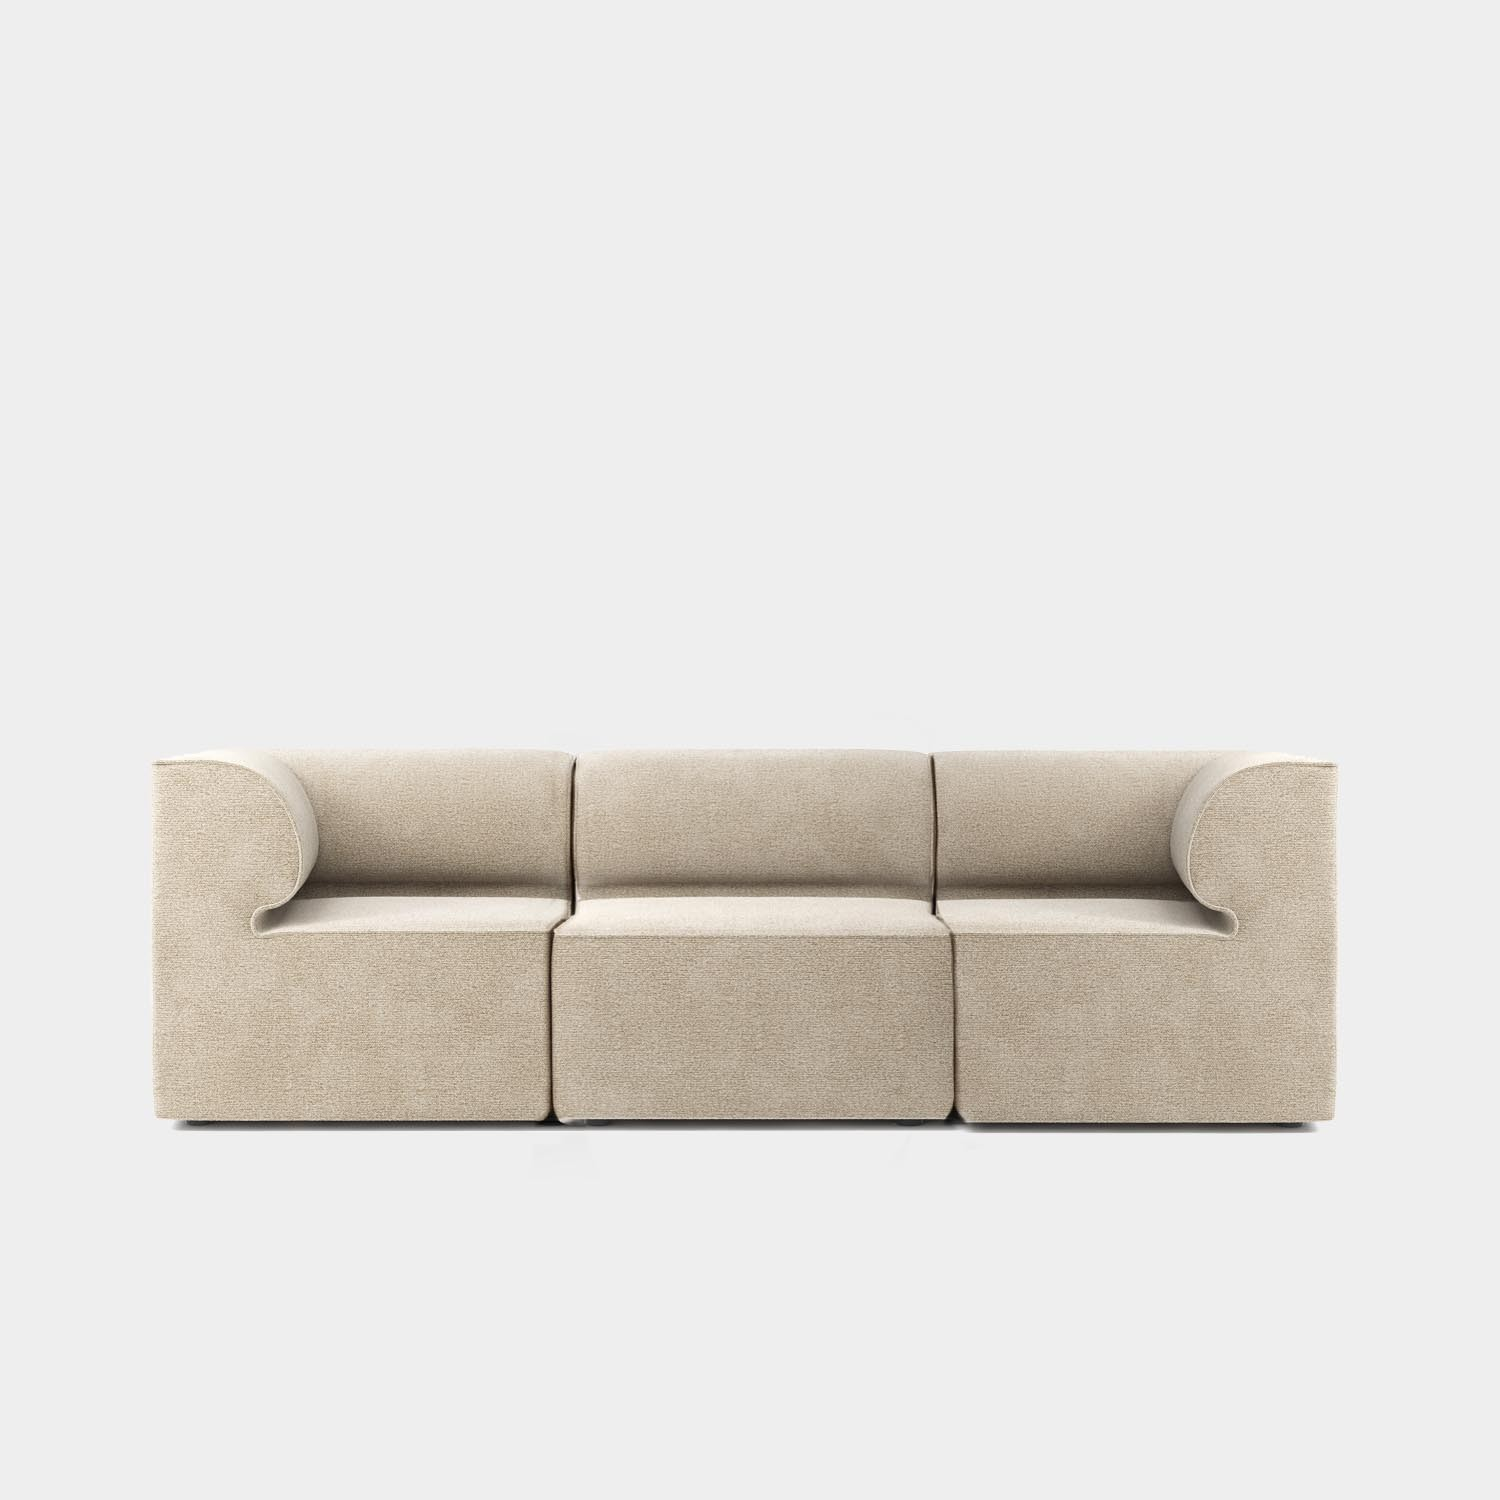 "Eave Modular Sofa 34"", Three Seater Sofa 34"", Category 2 Fabric, Made to Order"